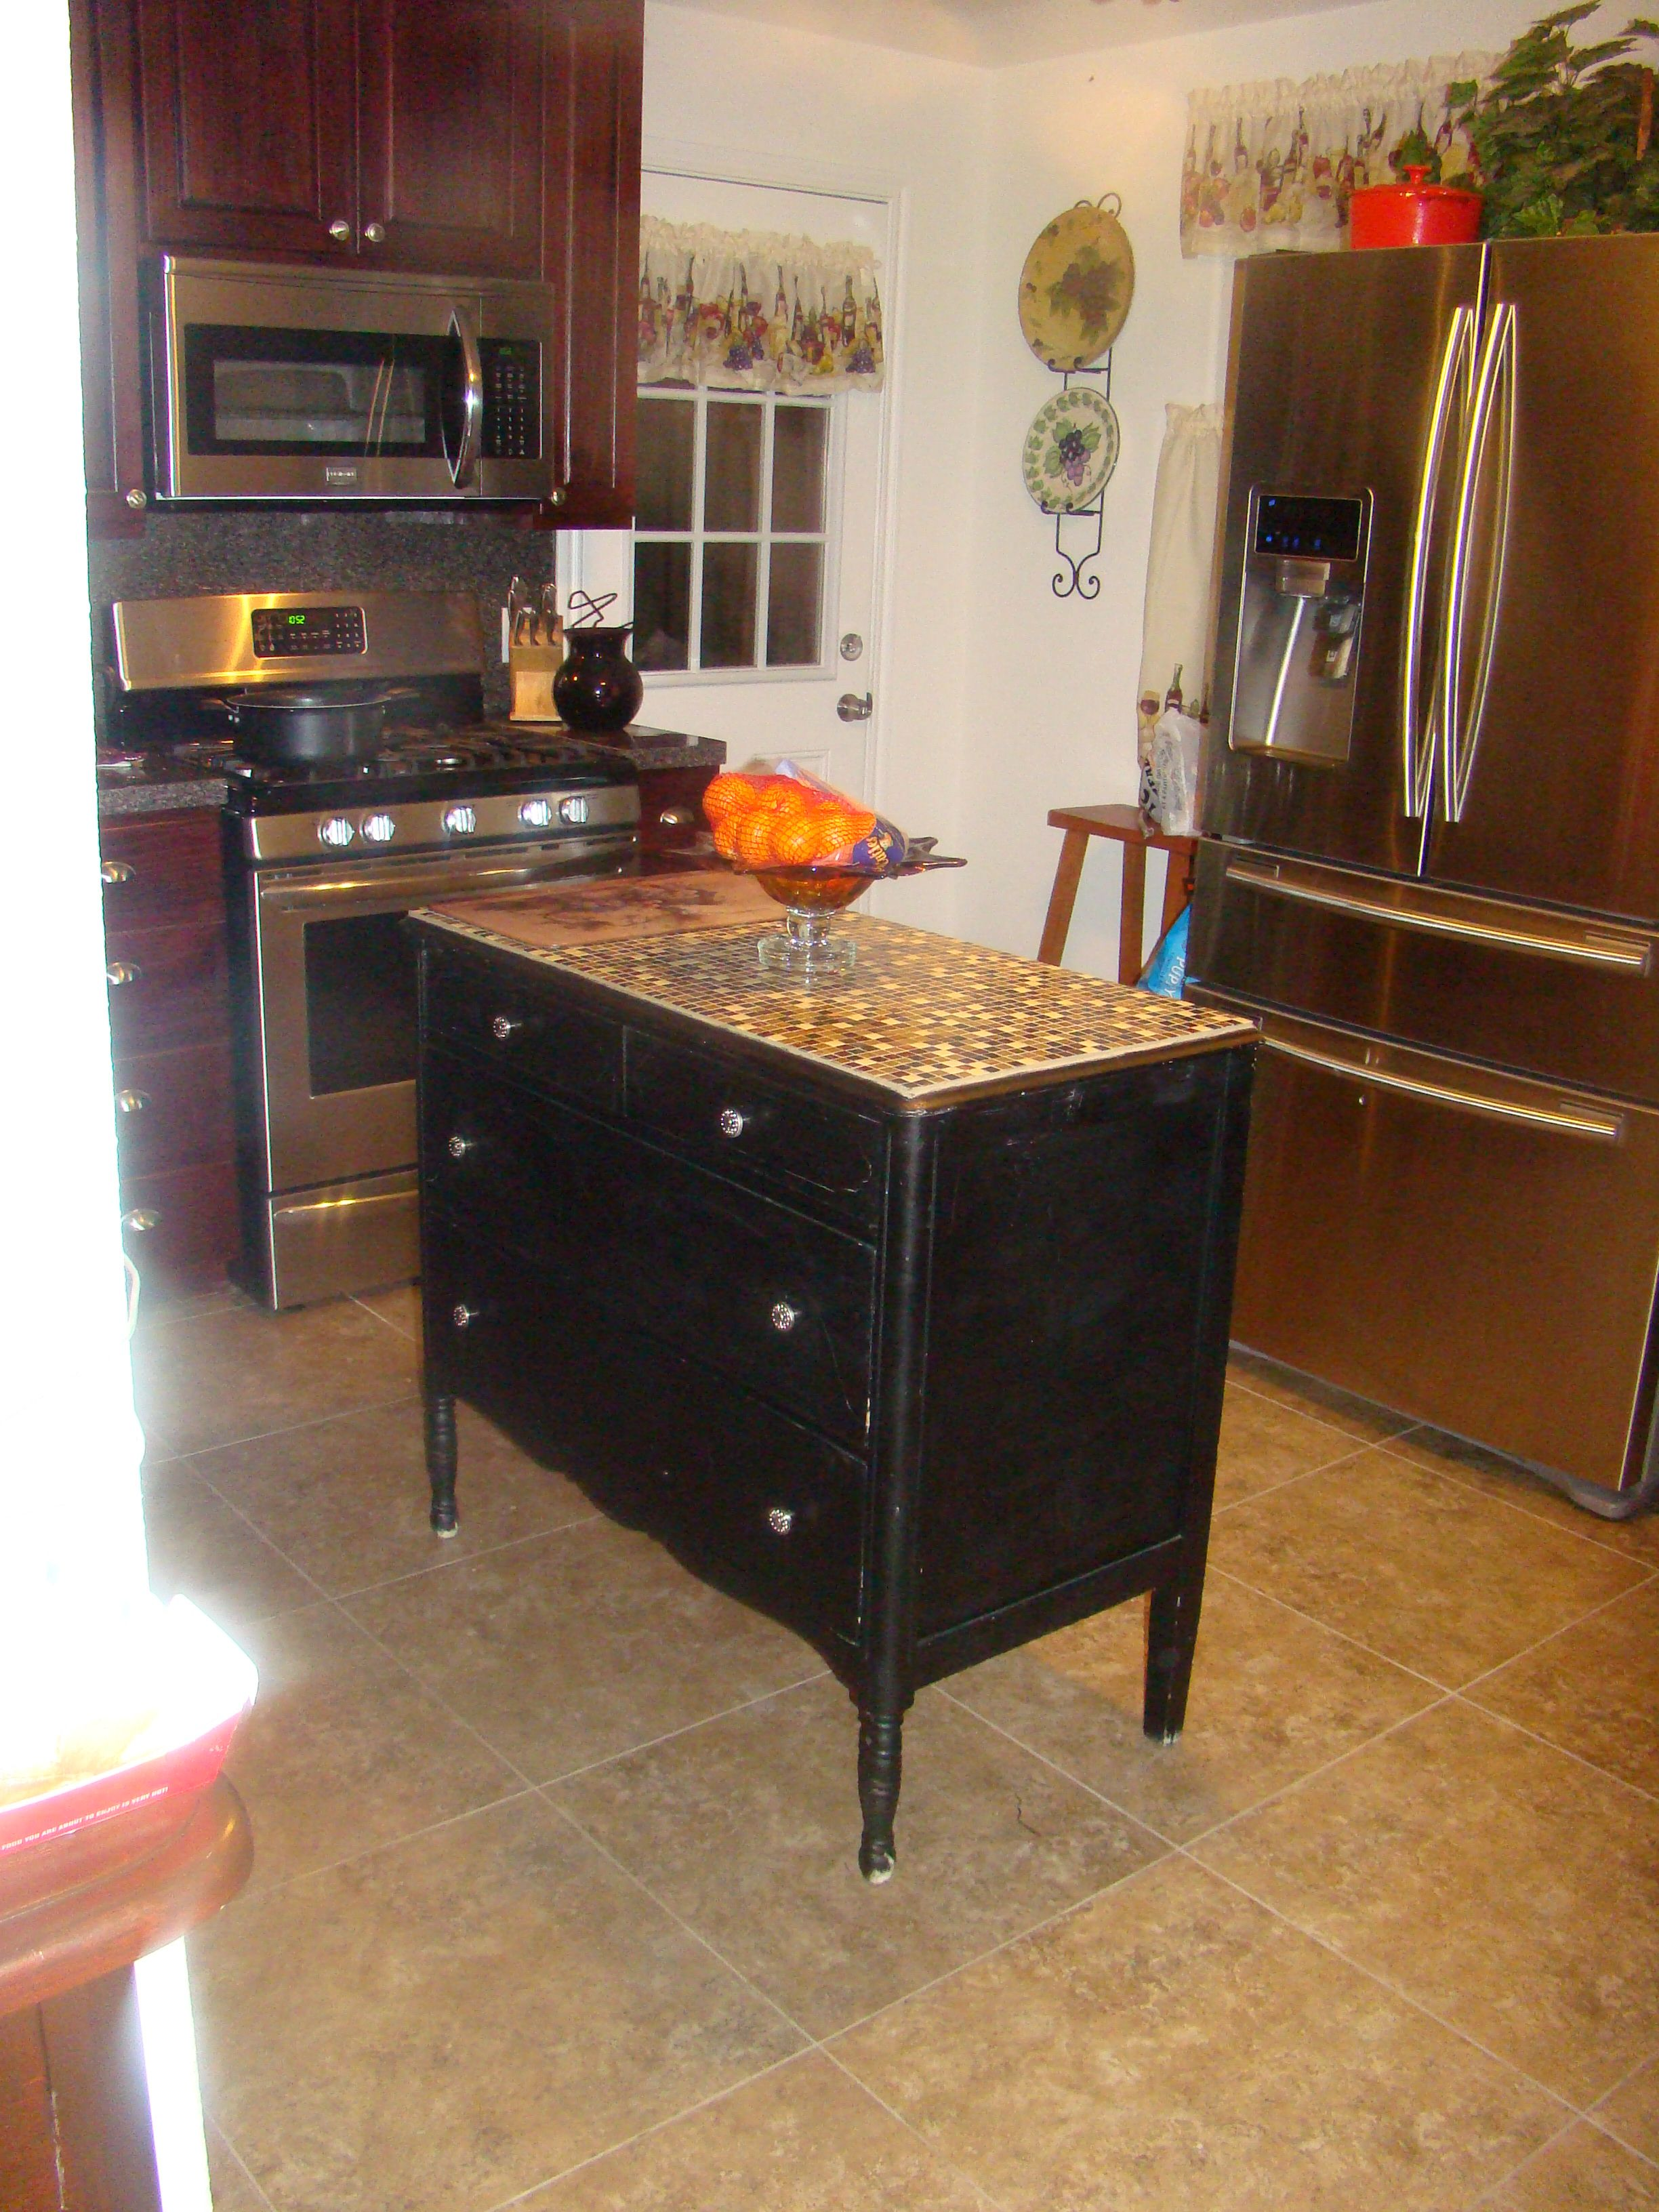 Refurbished Repurposed An Old Dresser For My Kitchen Island Added Gl Tile To The